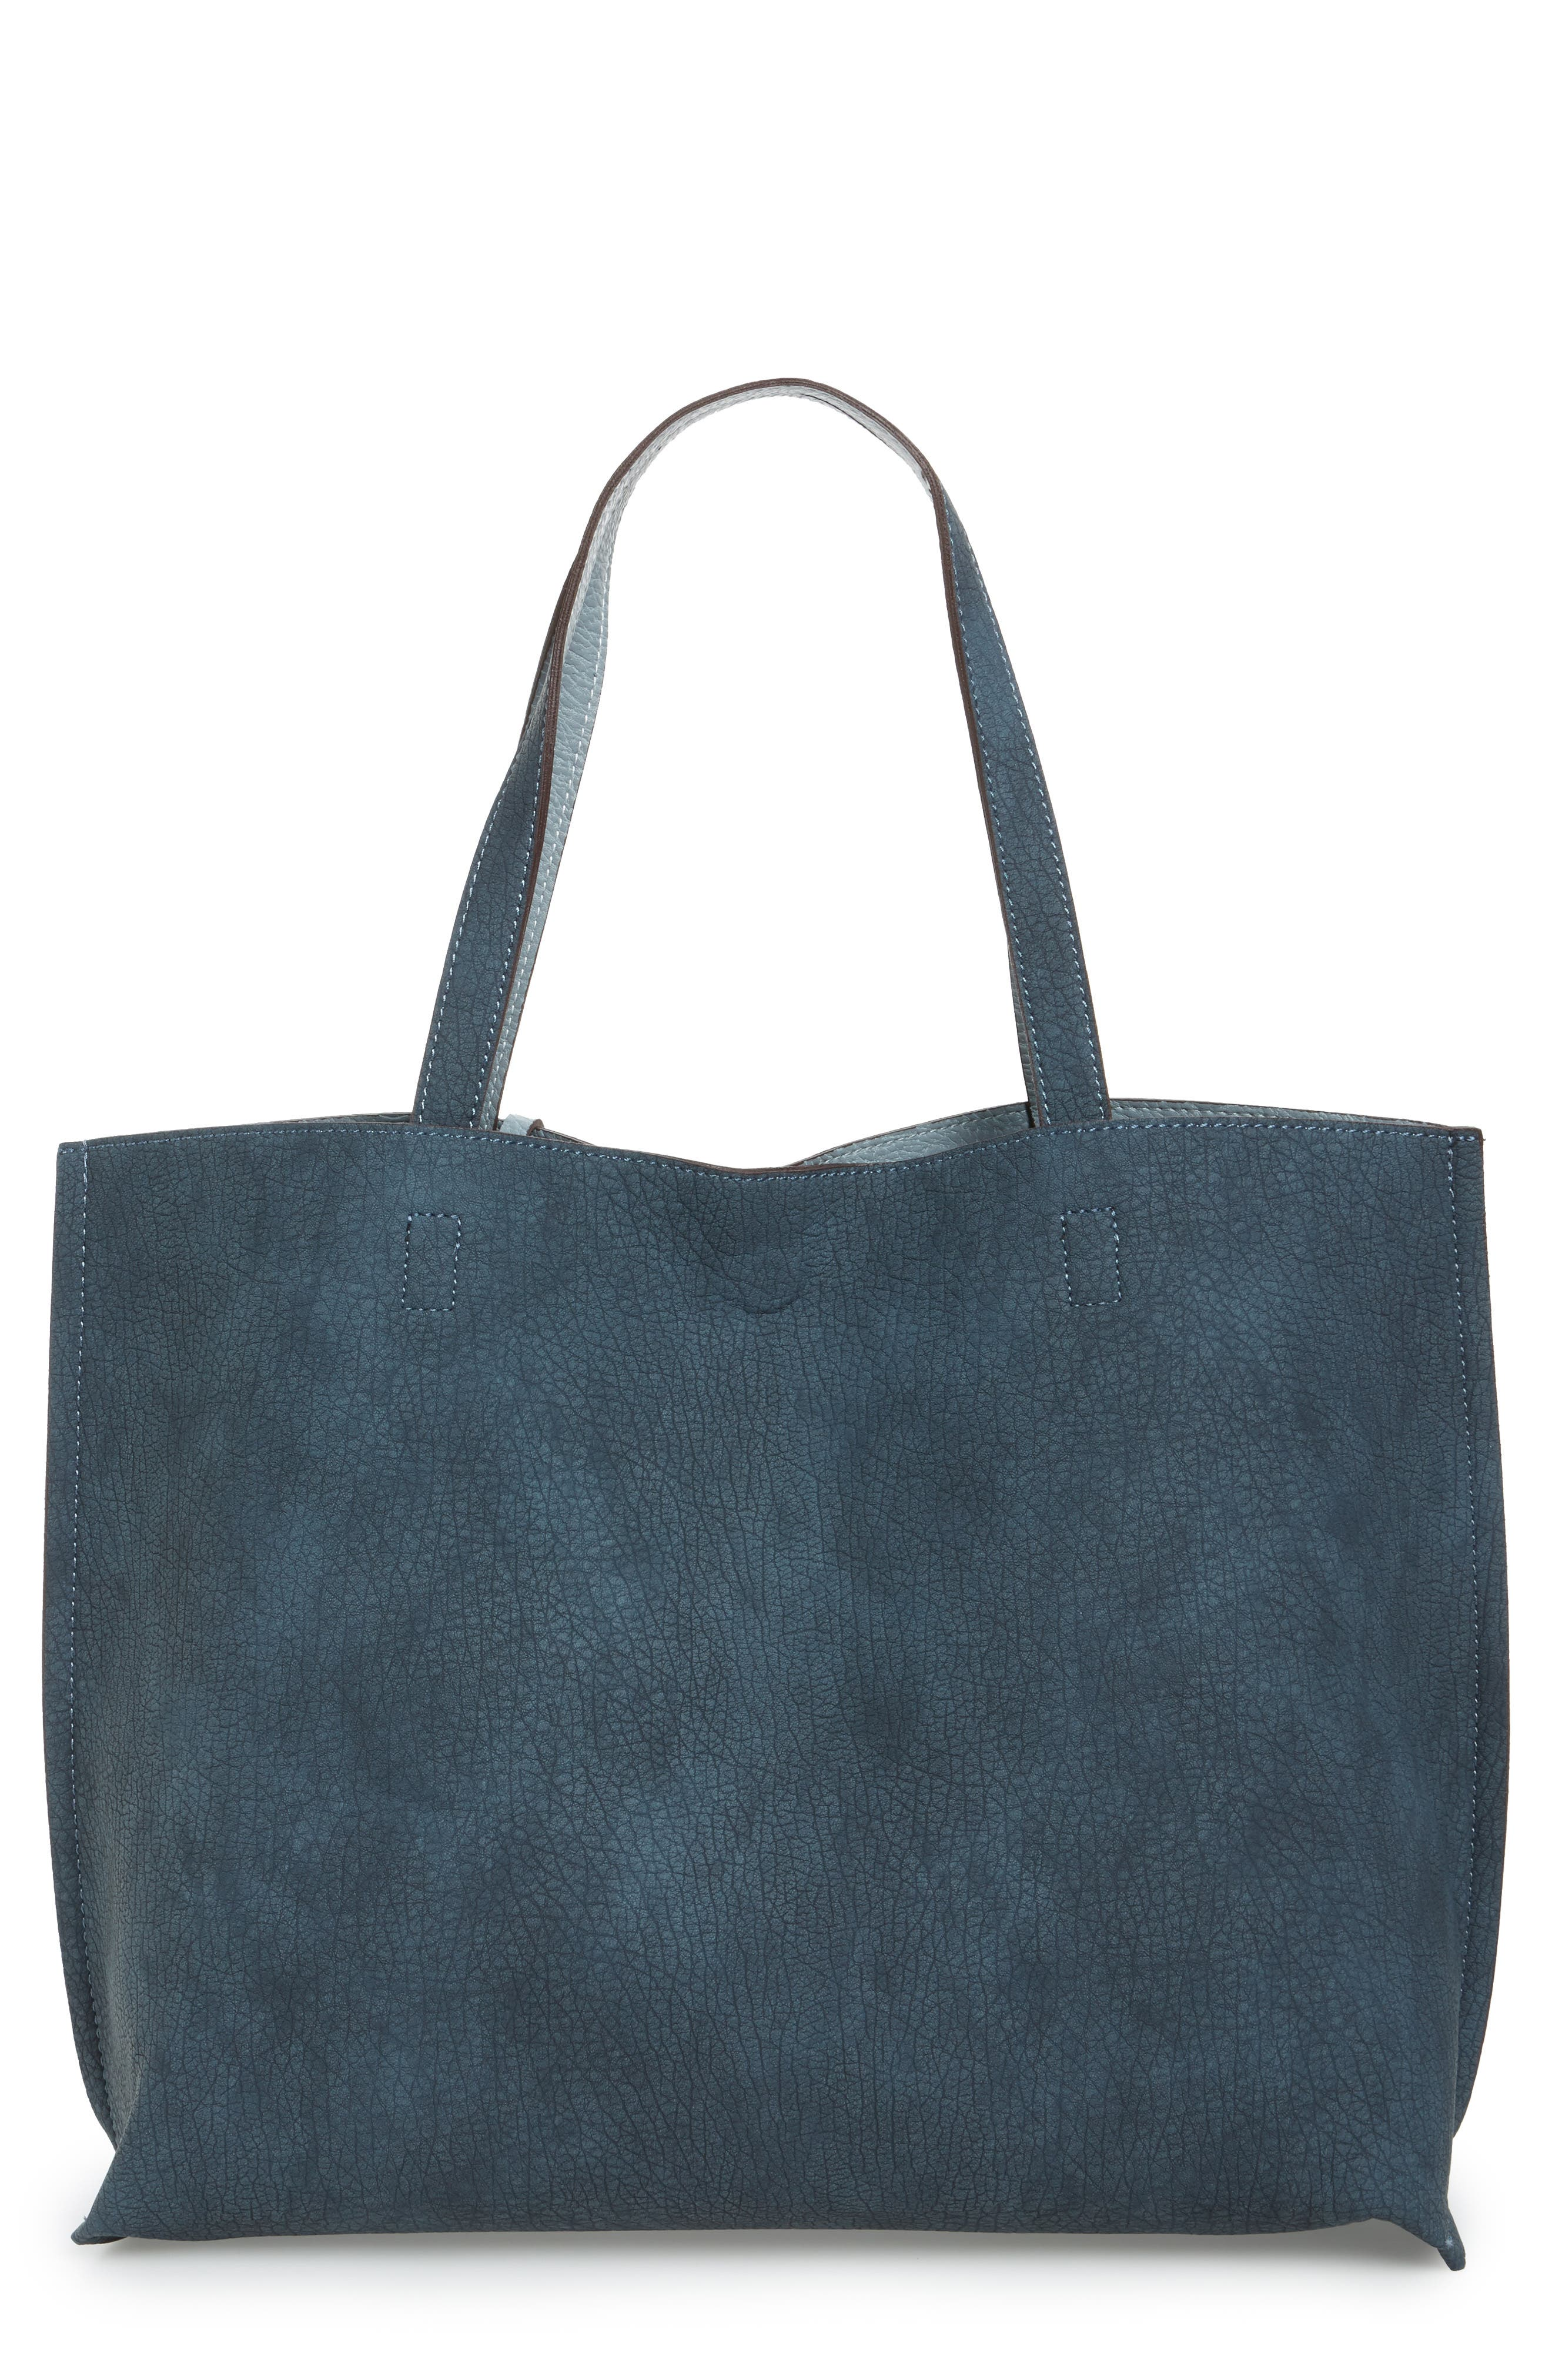 Reversible Faux Leather Tote,                             Main thumbnail 1, color,                             020